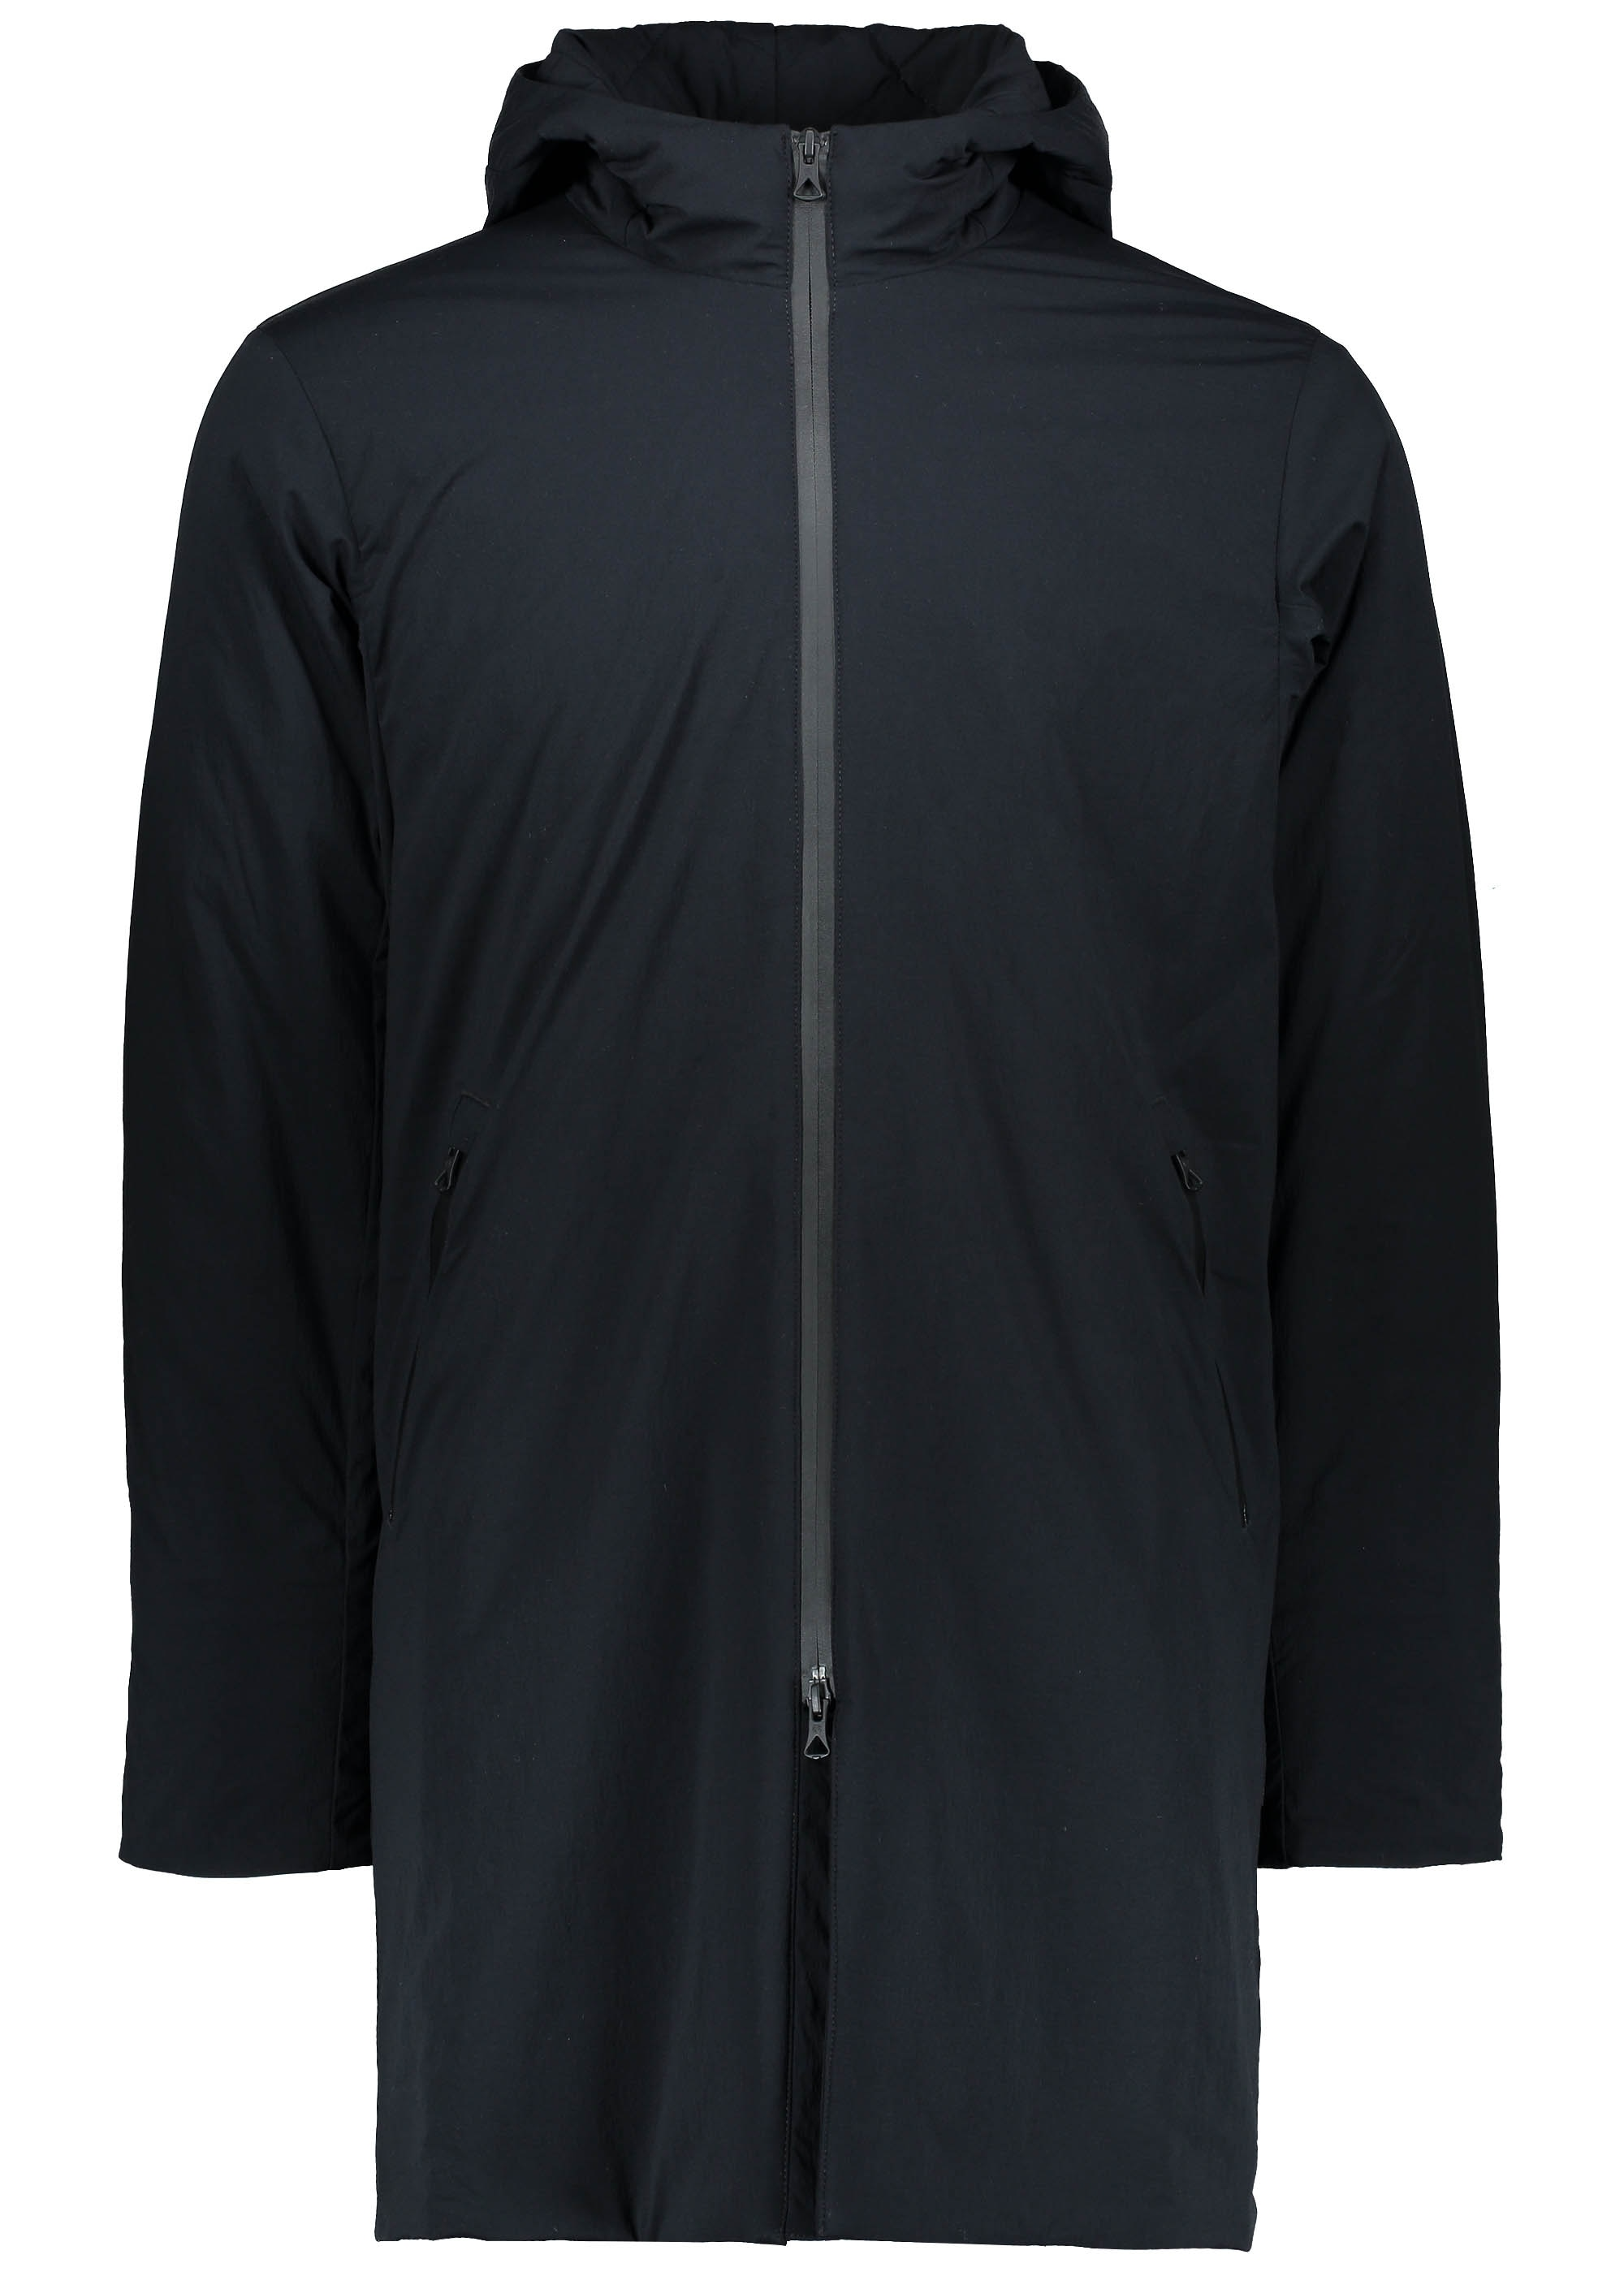 save off 87fe5 2df60 Reigning Champ Insulated Sideline Jacket - Black